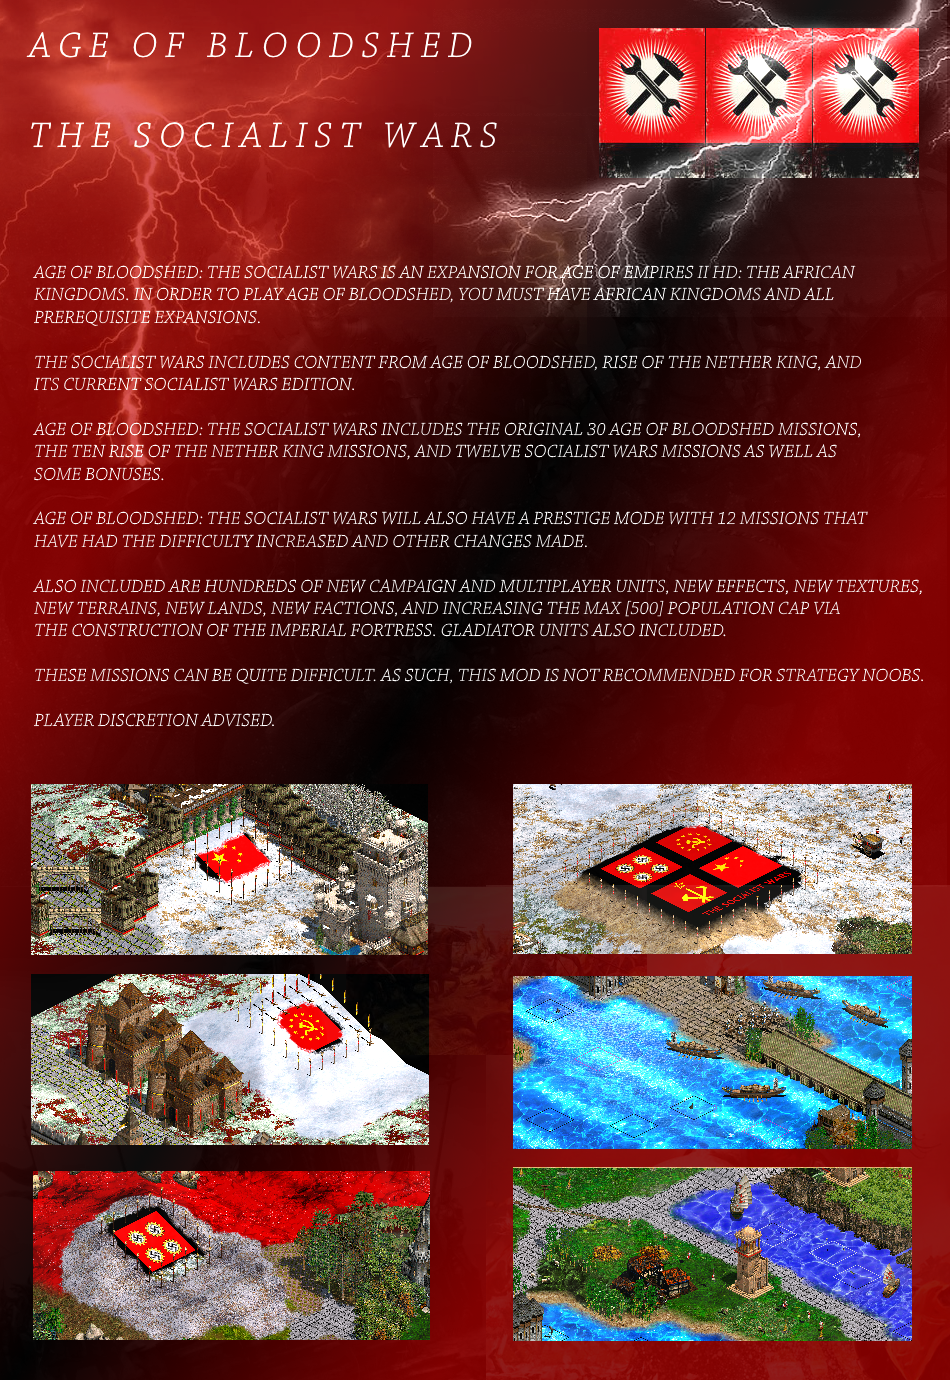 Age of Bloodshed 3 24 The Socialist Wars file - Age of